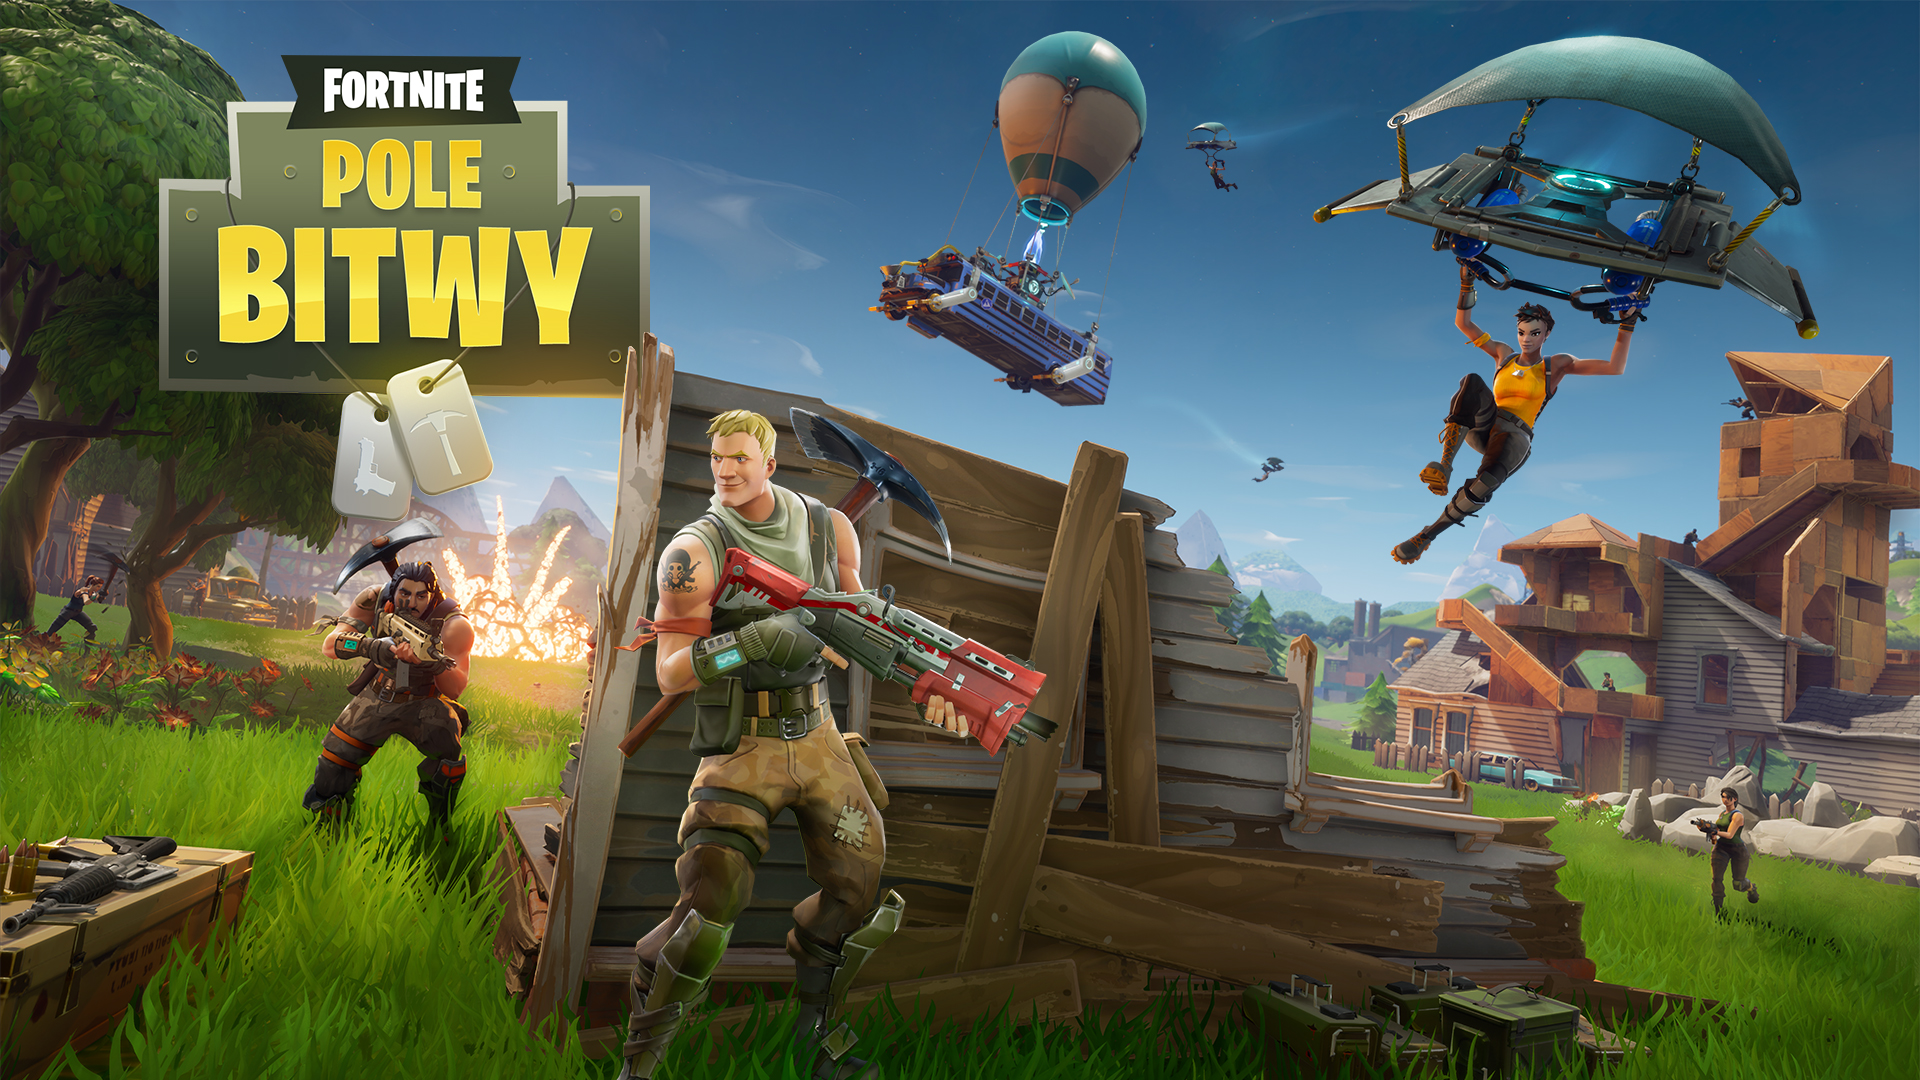 Fortnite%2Fblog%2Fpatch-v-1-6---fortnite-battle-royale%2FFortnite-BR_Key-Art_w-Logo_PL-1920x1080-ad28e341a8a8383061c6362de9305123ec95bb42